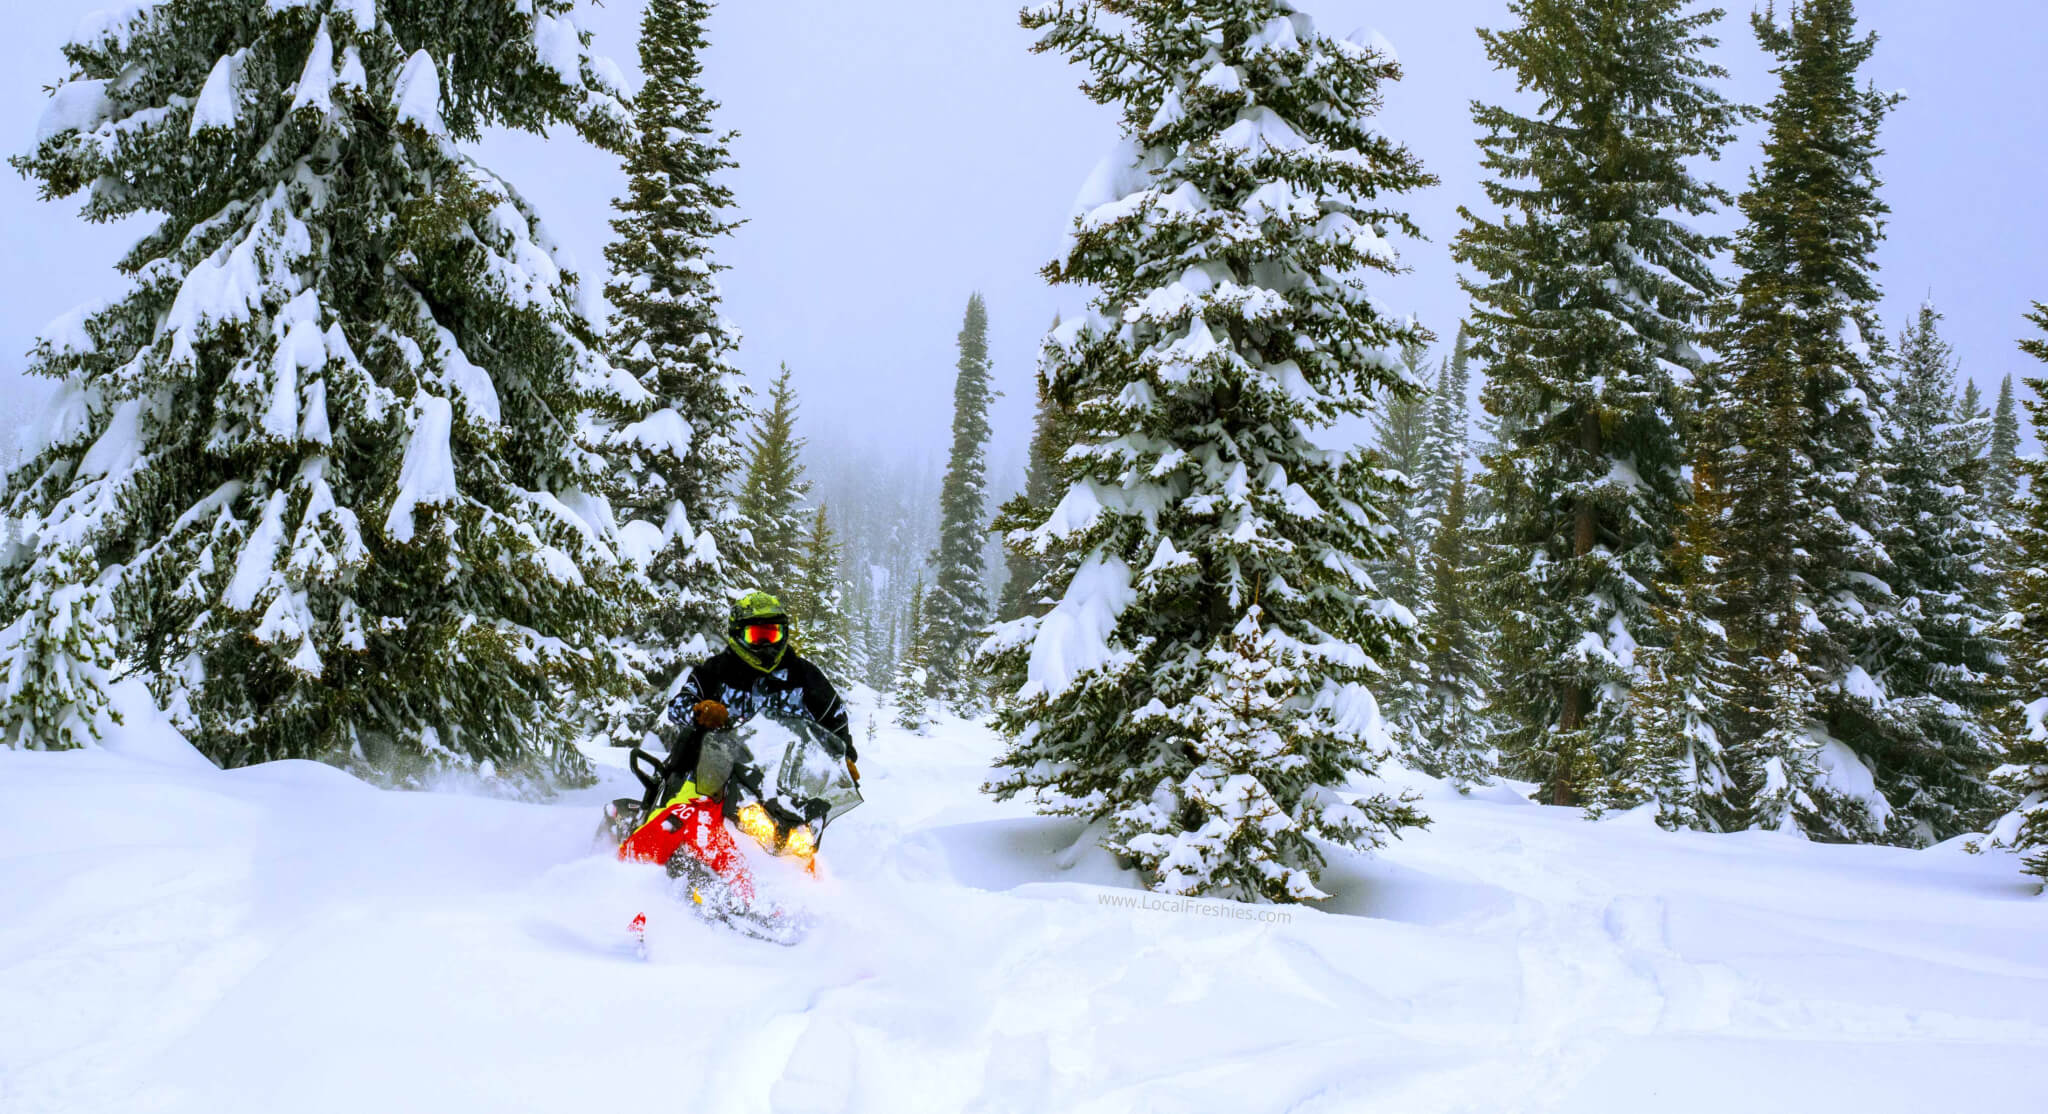 snowmobiling in the Payette National Forest near Brundage Resort by McCall Idaho